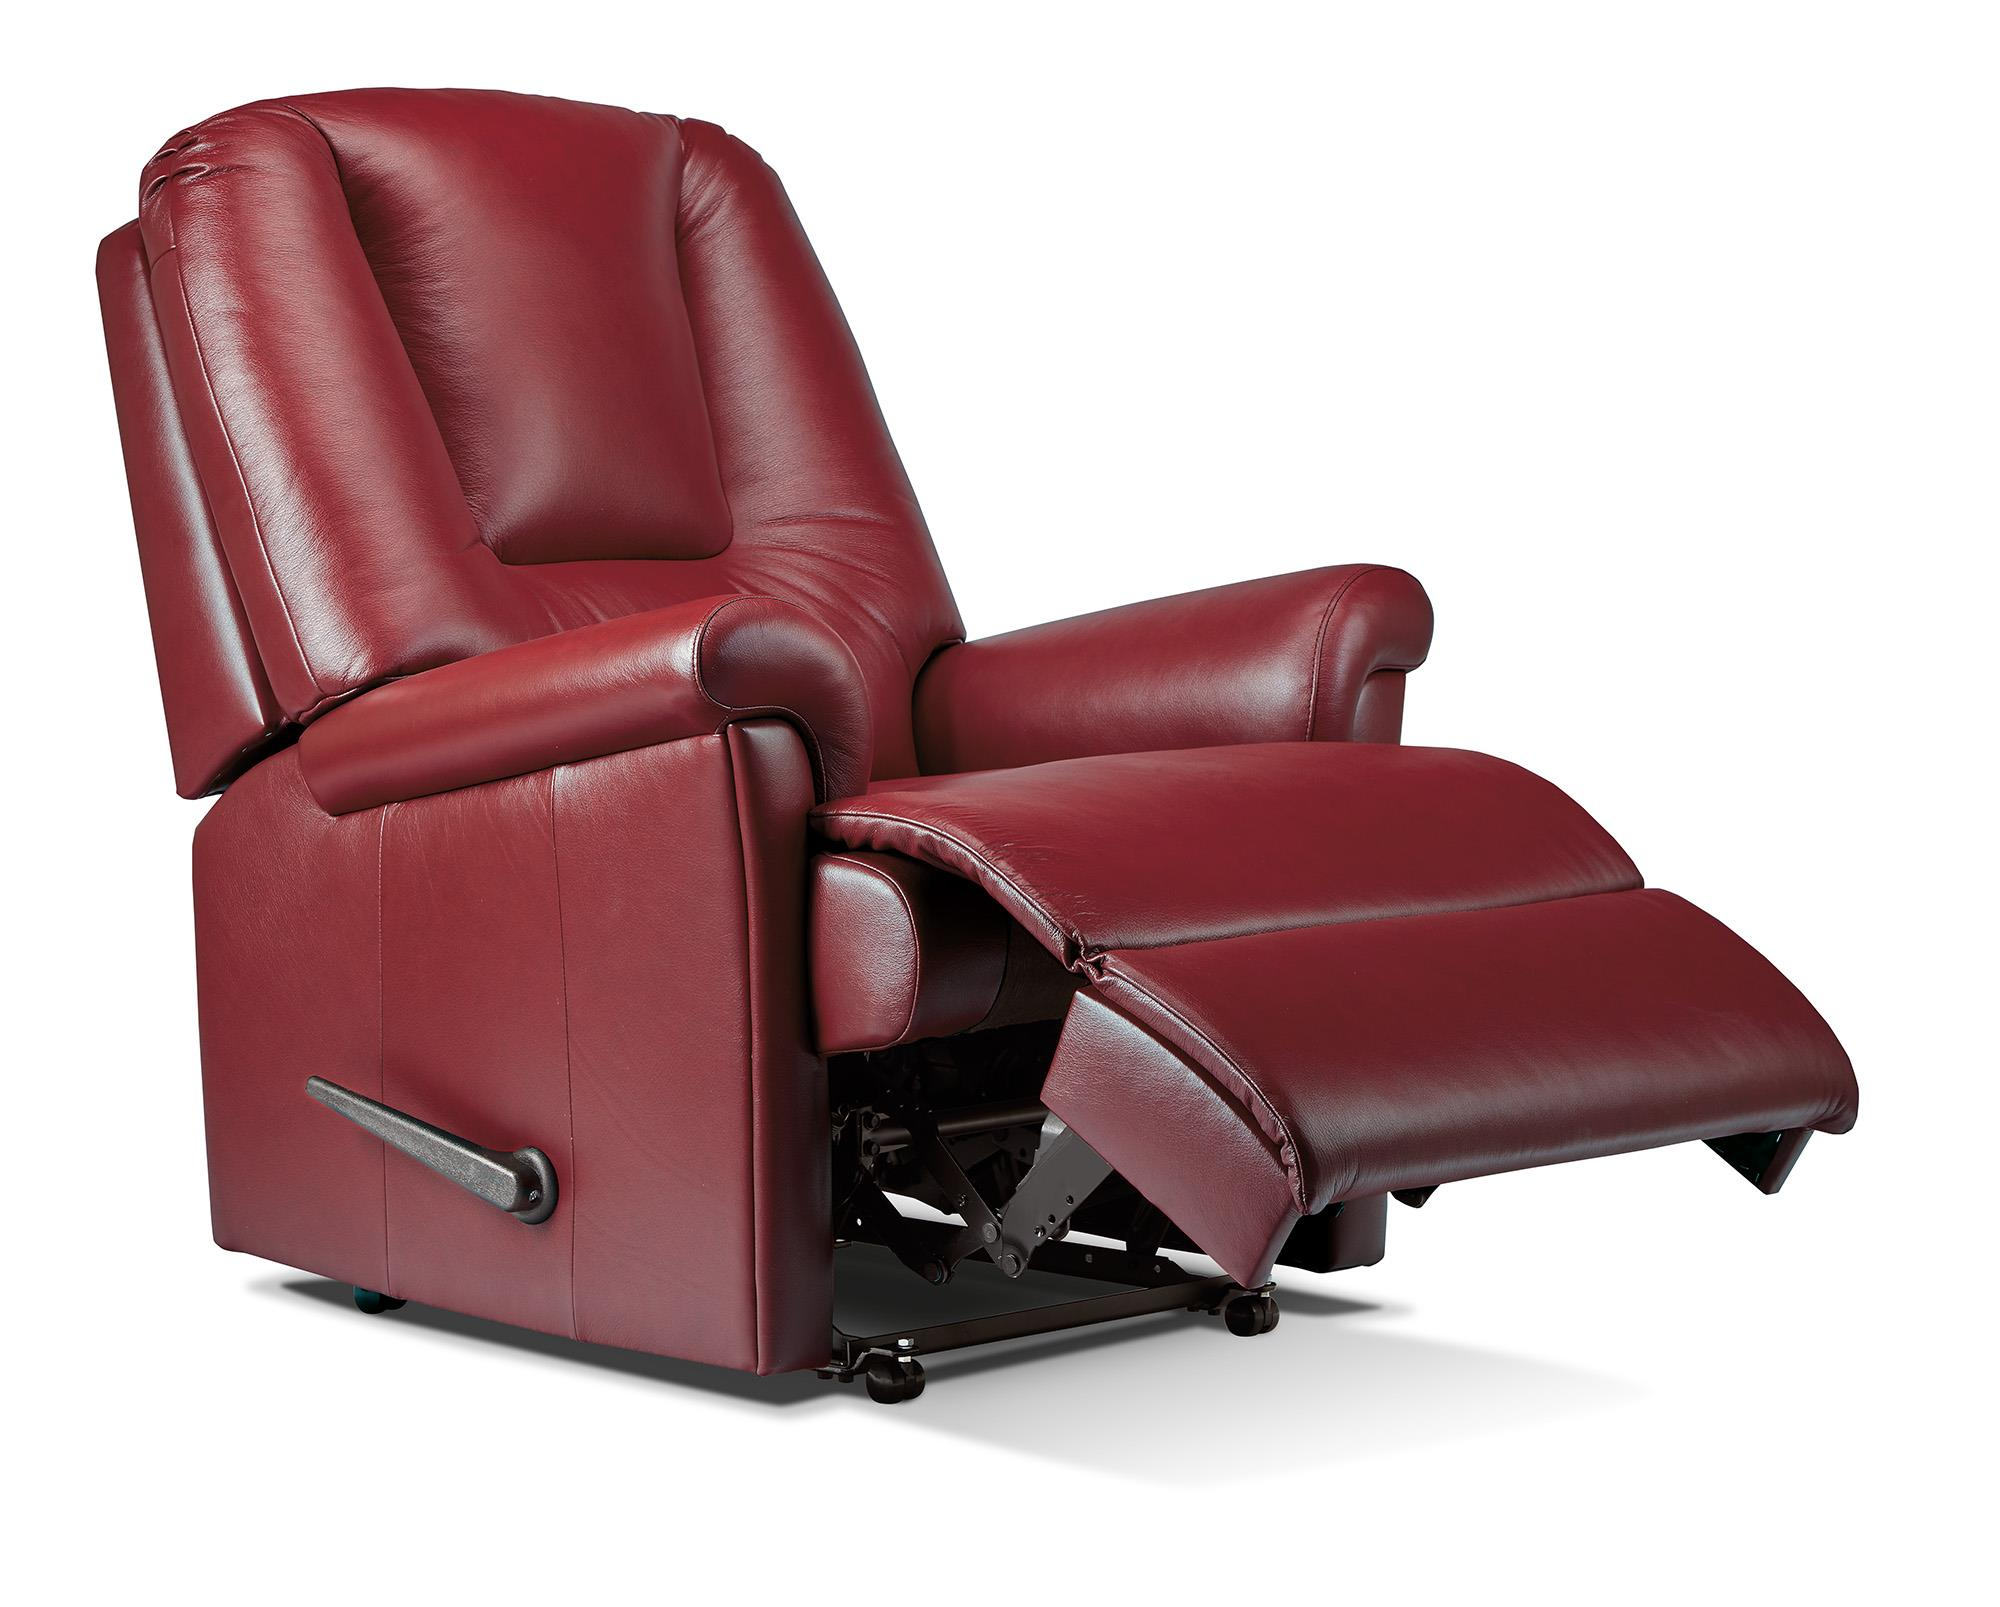 MILBURN - Chair Recliner